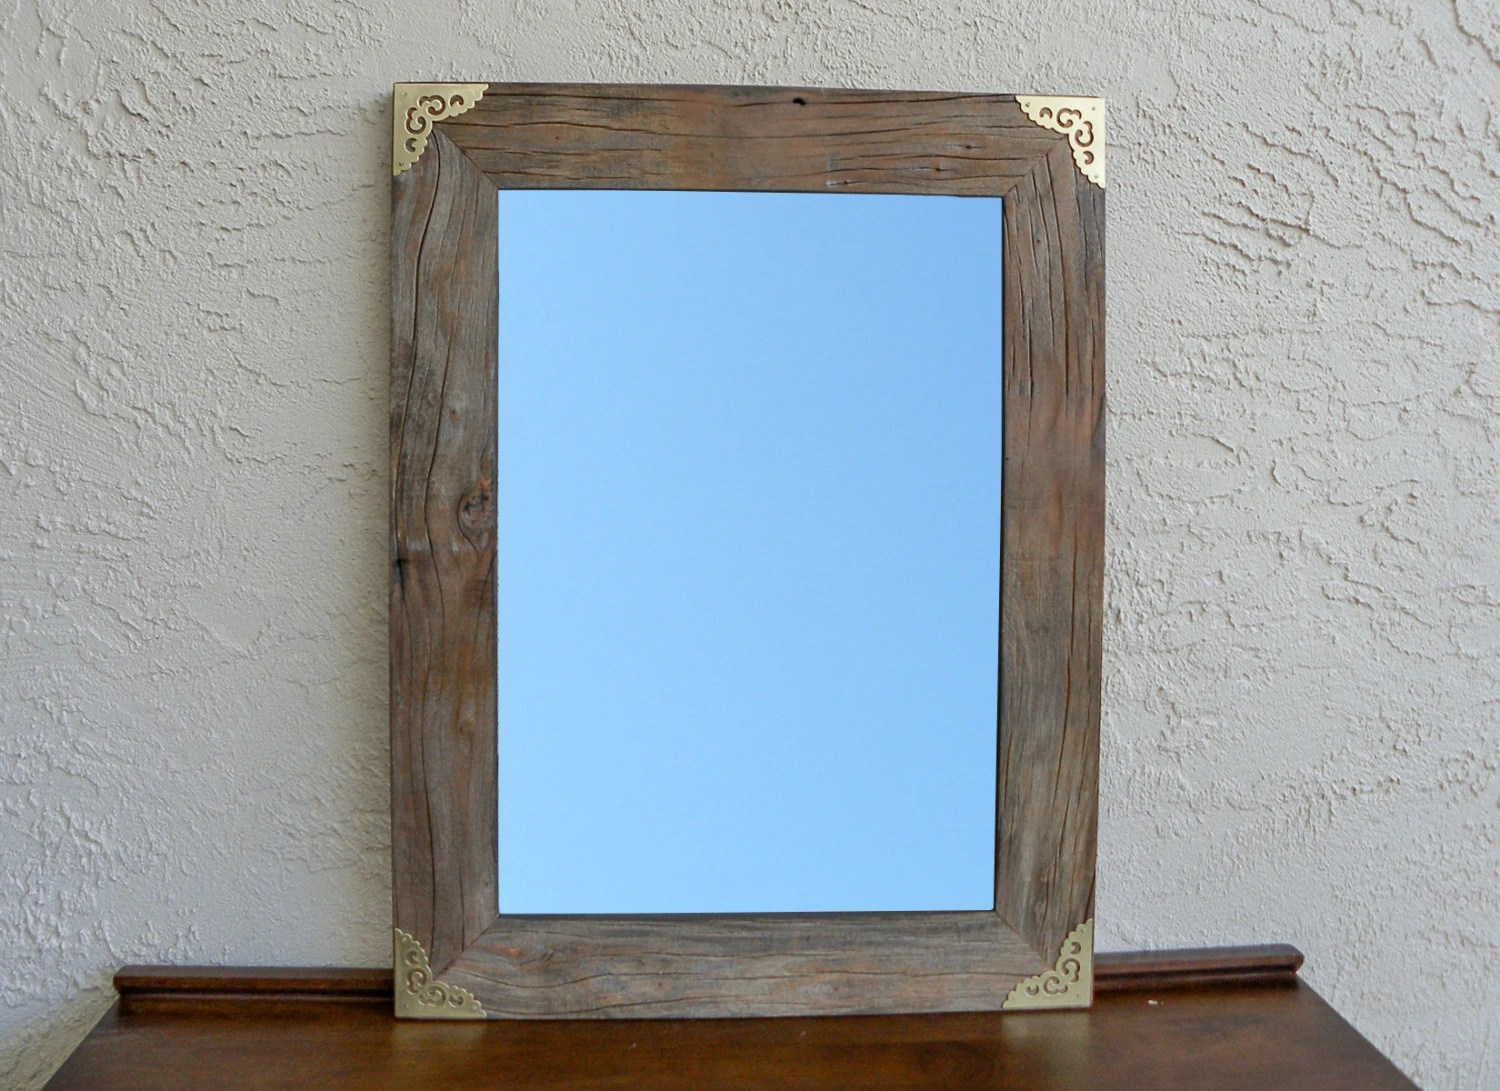 Reclaimed Wood Mirror With Gold Metal Corners. Rustic Decor